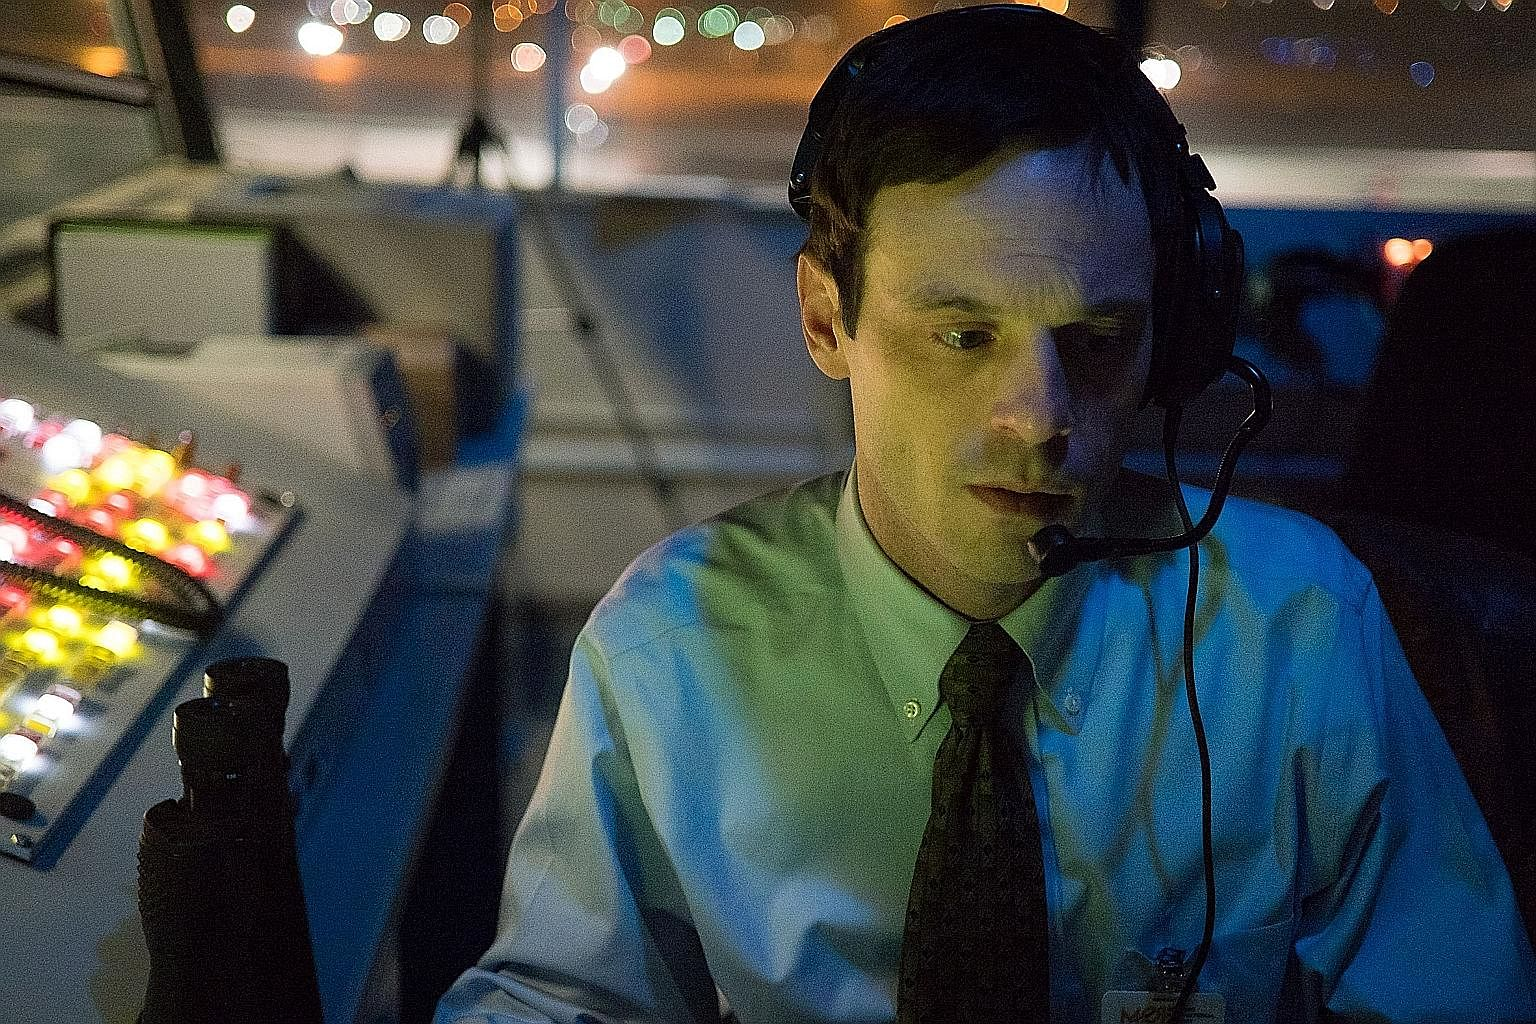 Jharrel Jerome and Ashton Sanders star in Moonlight, while Scoot McNairy (above) plays an air traffic controller under investigation for a collision in Aftermath.